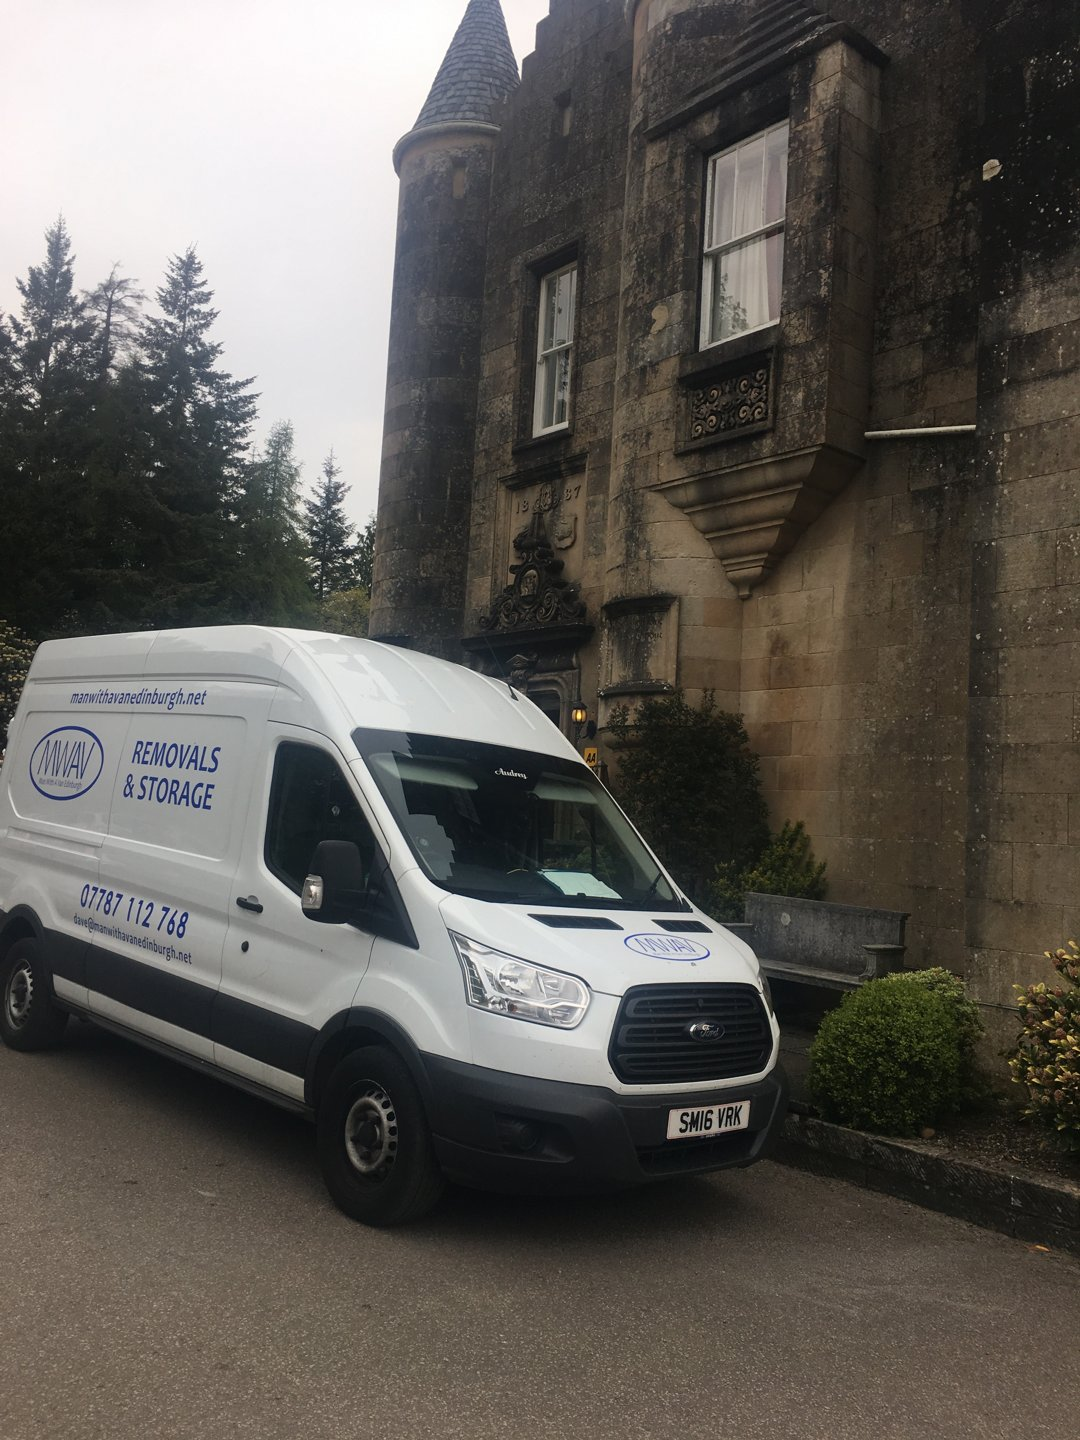 man with a van Edinburgh parked by the side of a building